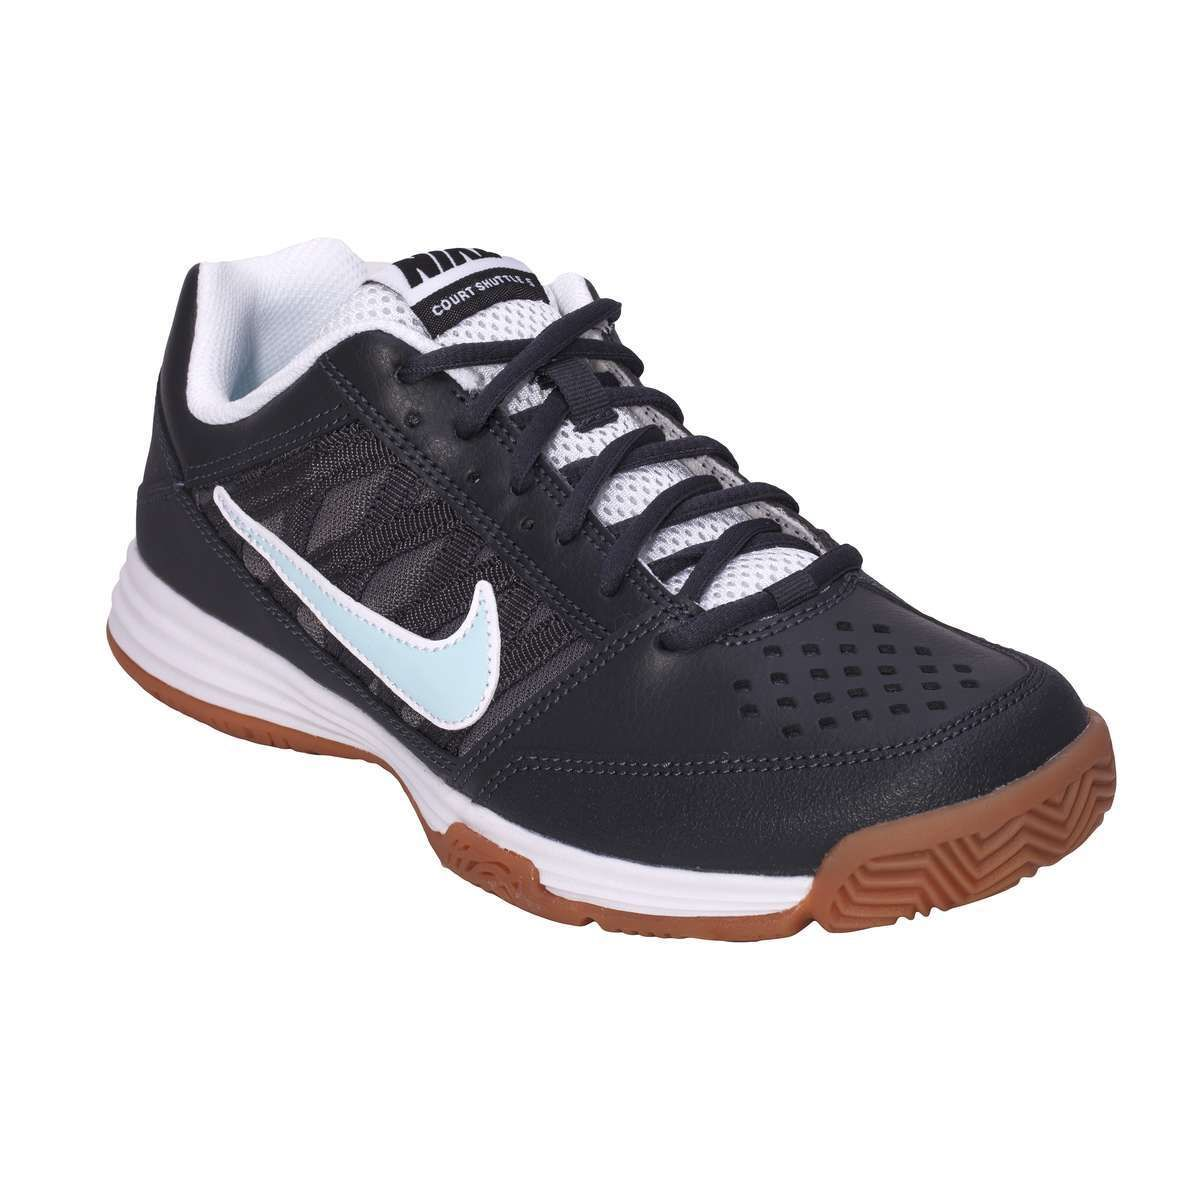 Here are a couple different versions of the Nike Court Shuttle 5 for women.  Classy women. cfaf04144